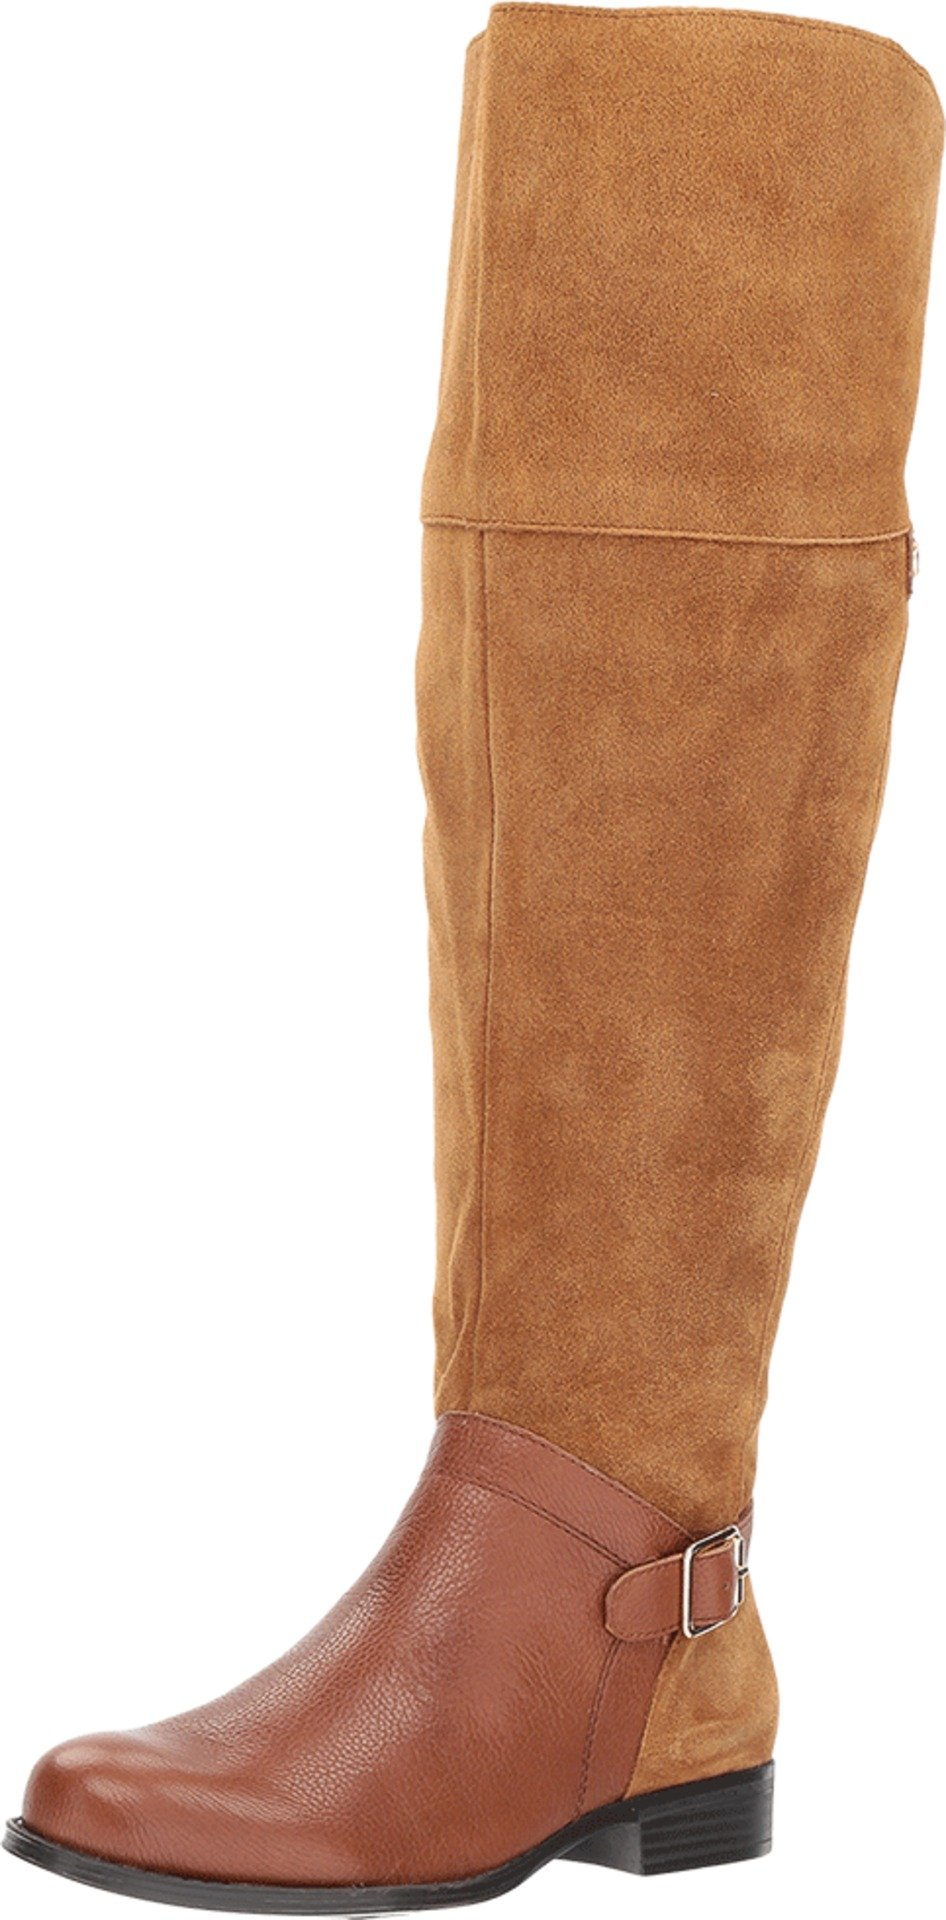 Naturalizer Women's January Wc Riding Boot, Camel, 11 2W US